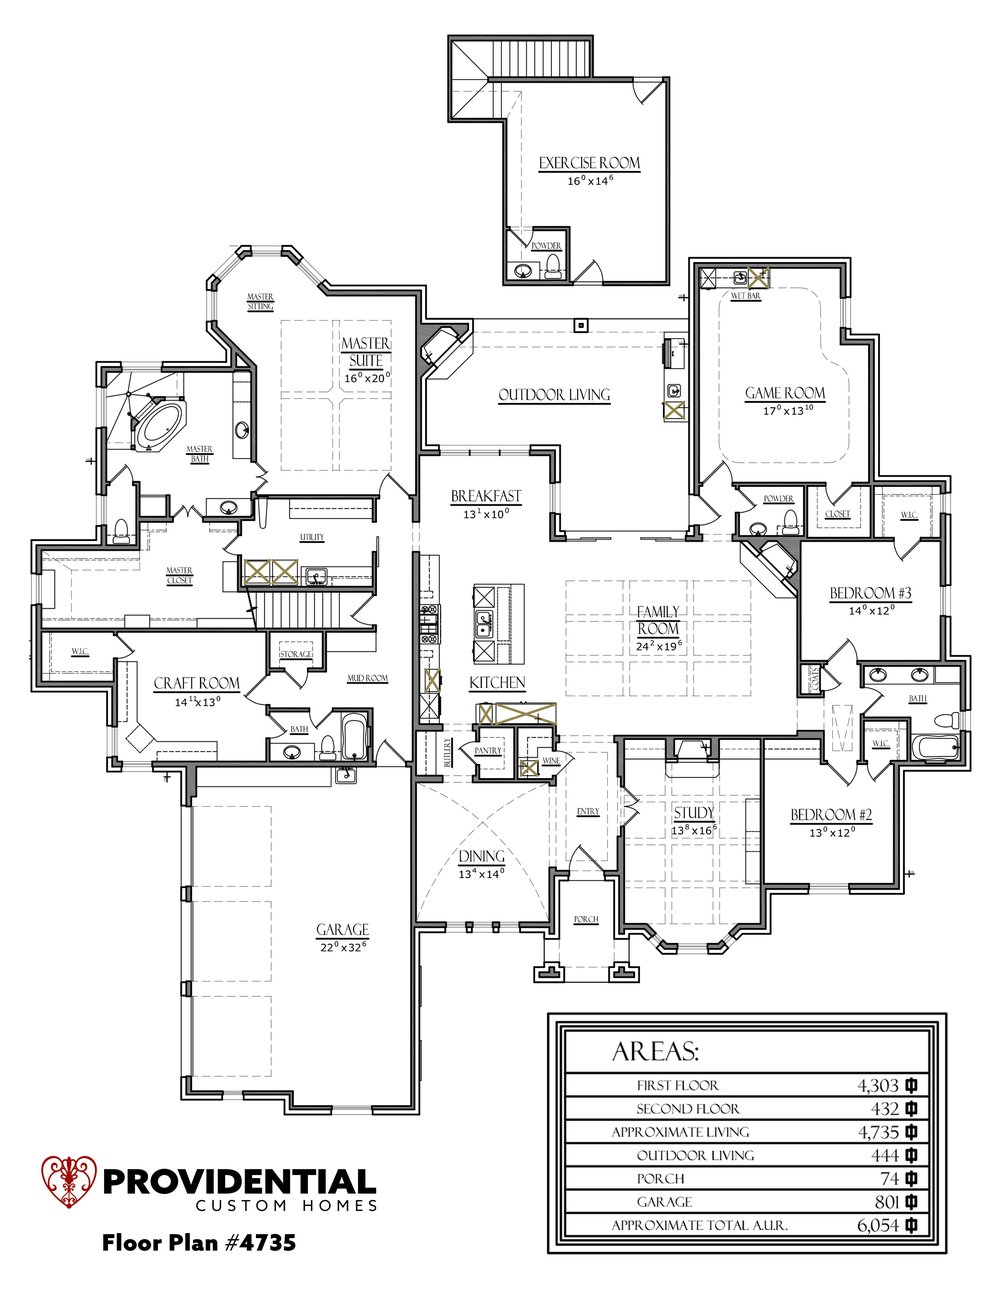 The FLOOR PLAN #4735.jpg